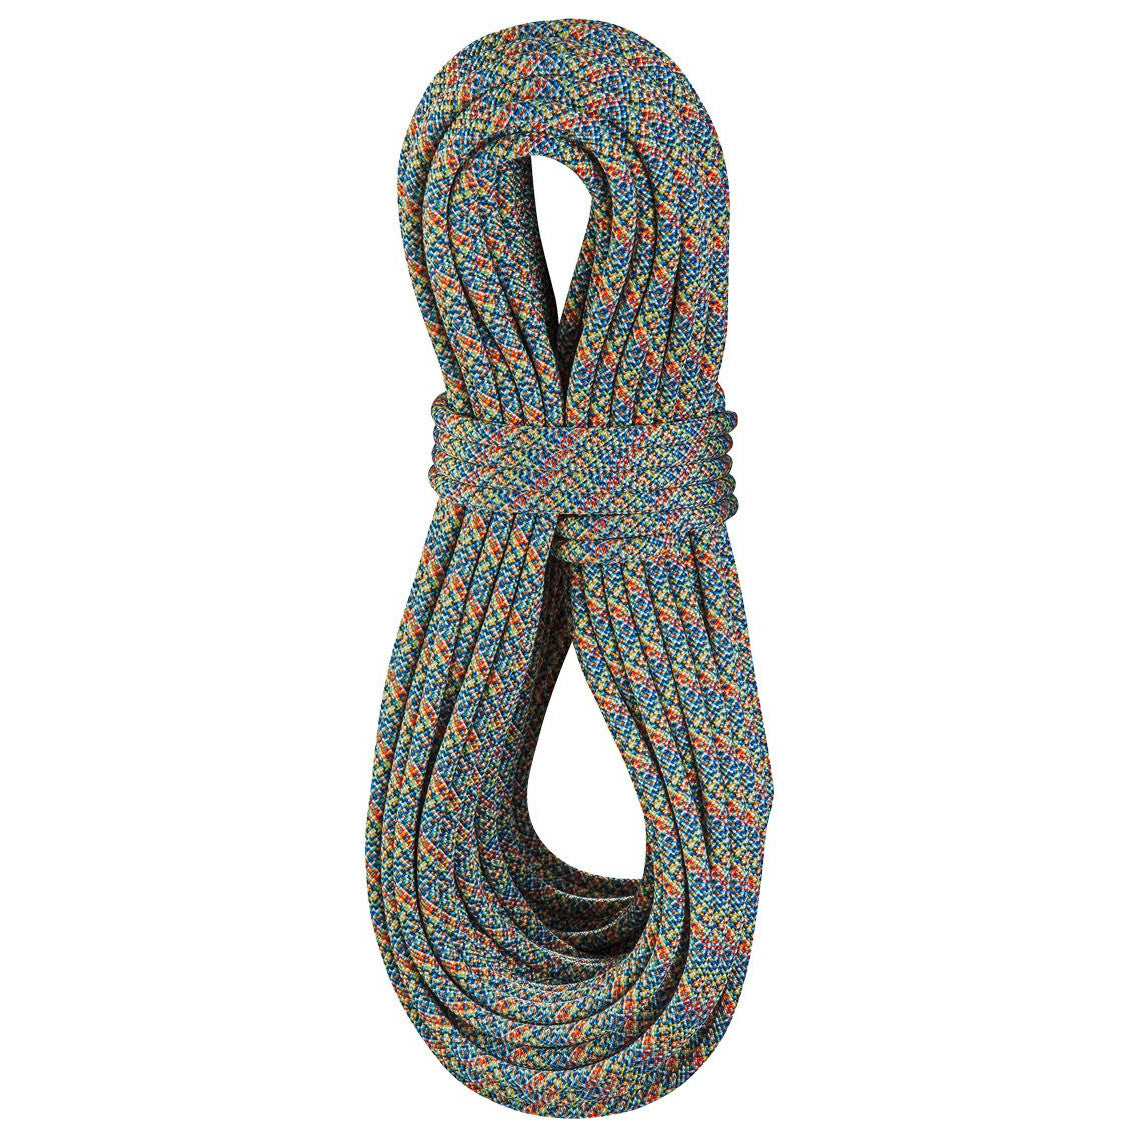 Edelrid Parrot 9.8 x 80m climbing rope